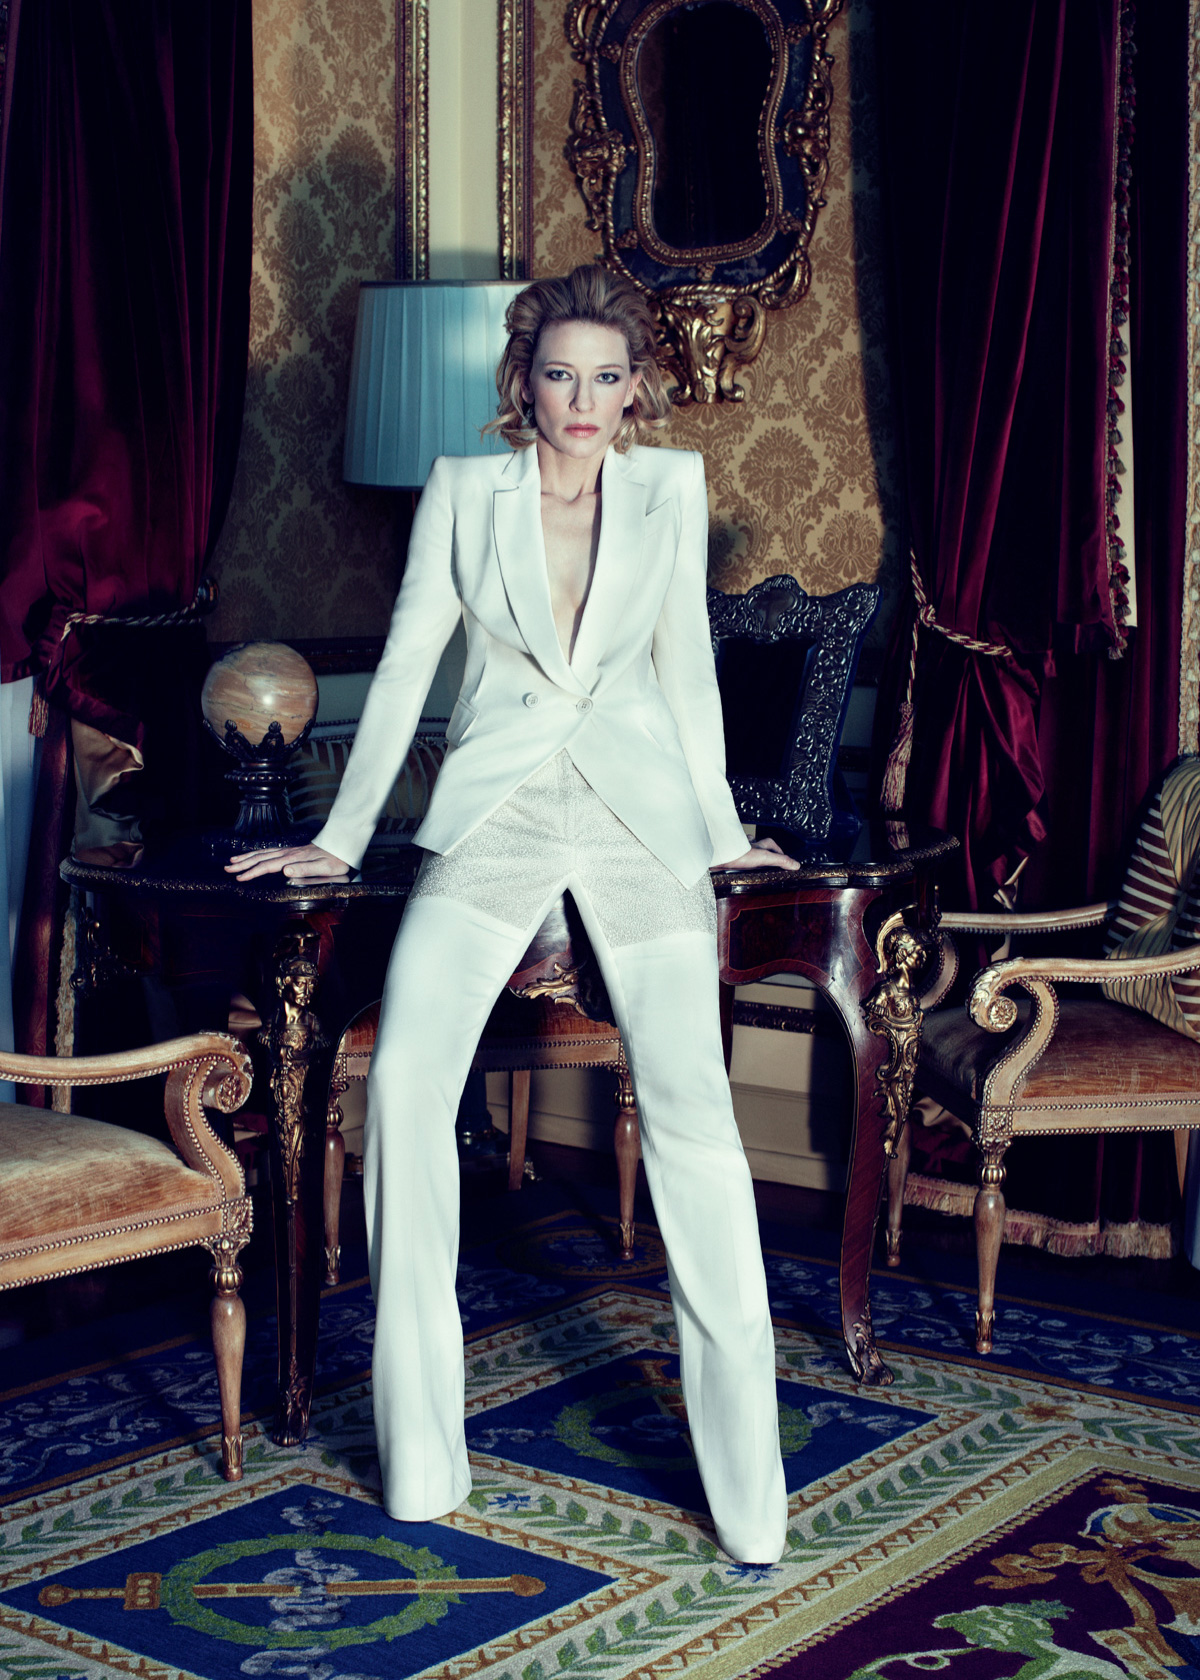 House Of Usher Cate Blanchett by Alexi Lubormirski 02